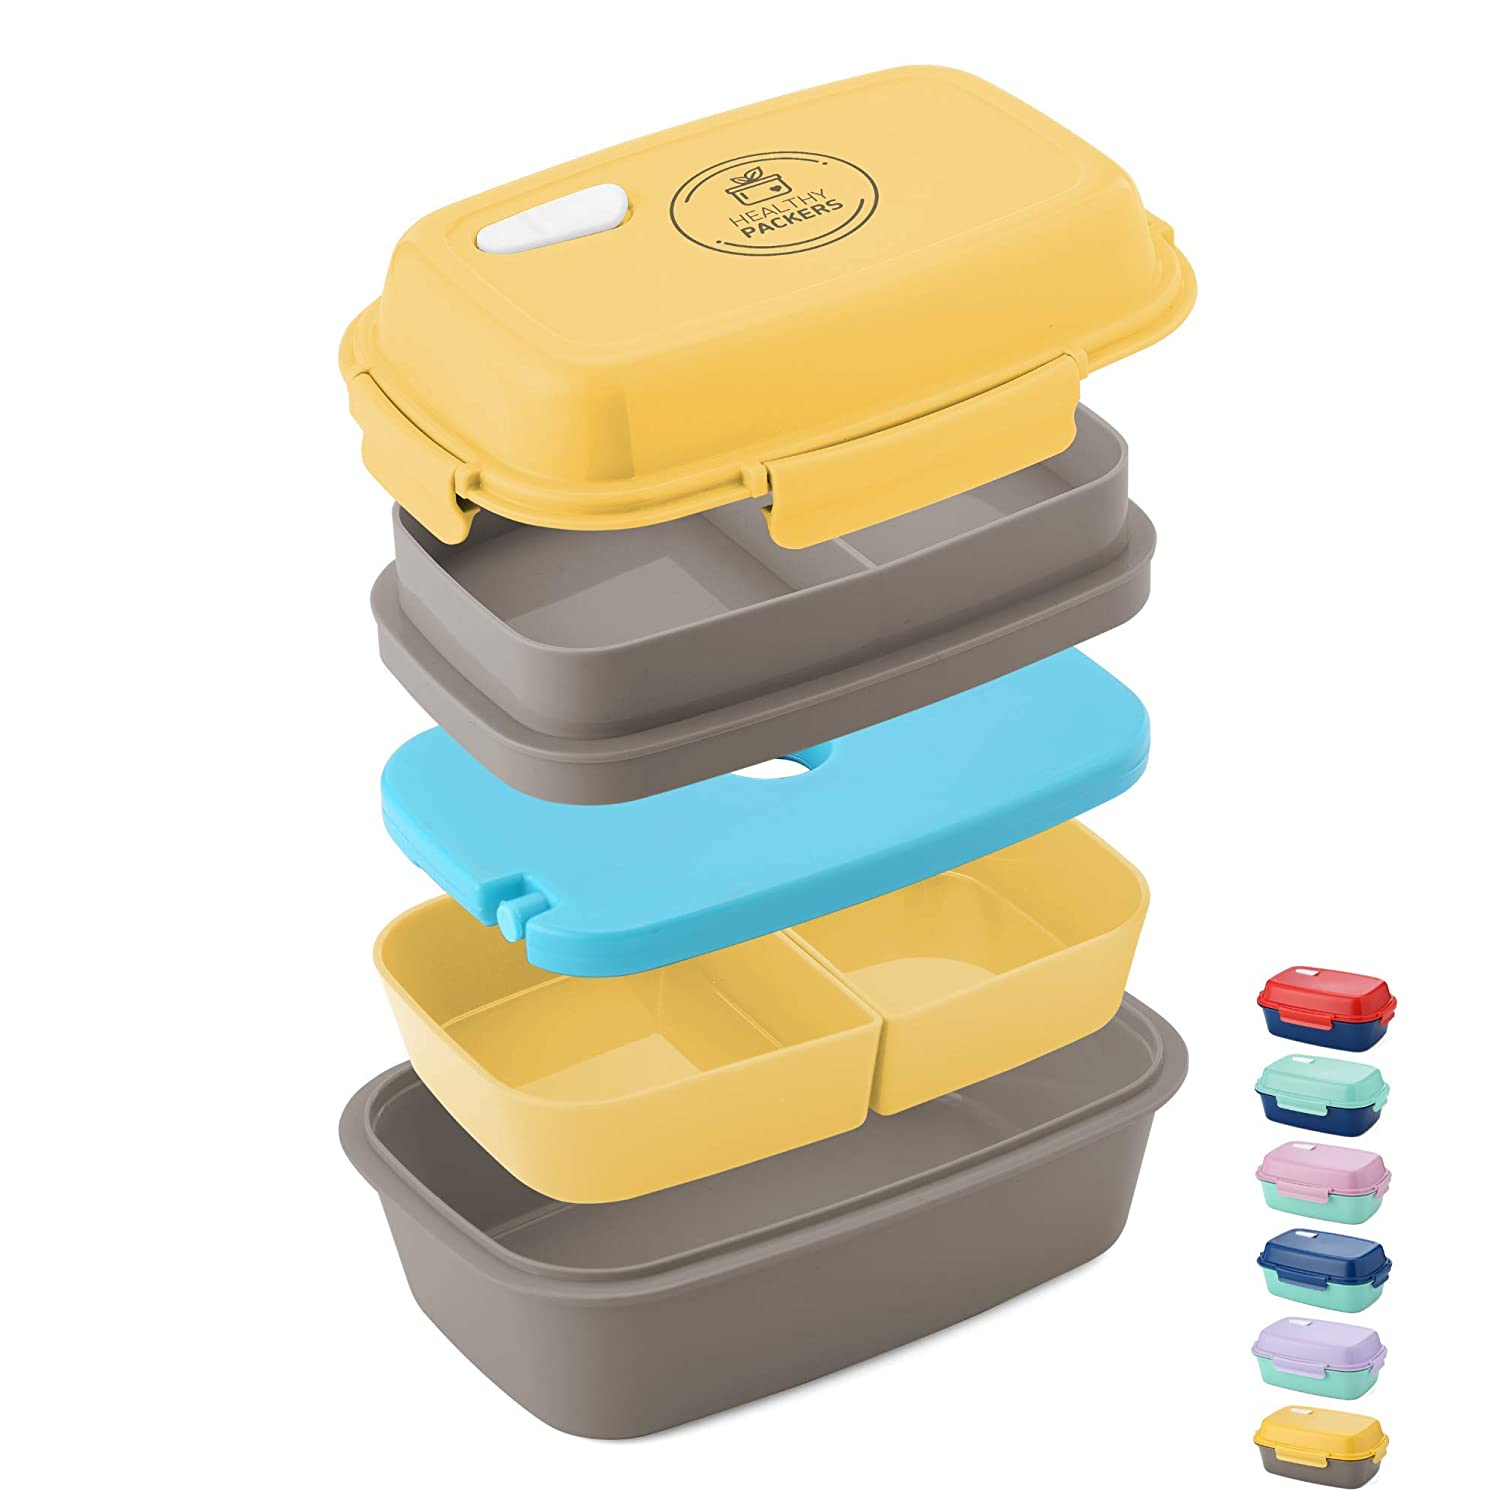 Top 9 Best Bento Box for Toddlers Reviews in 2019 6